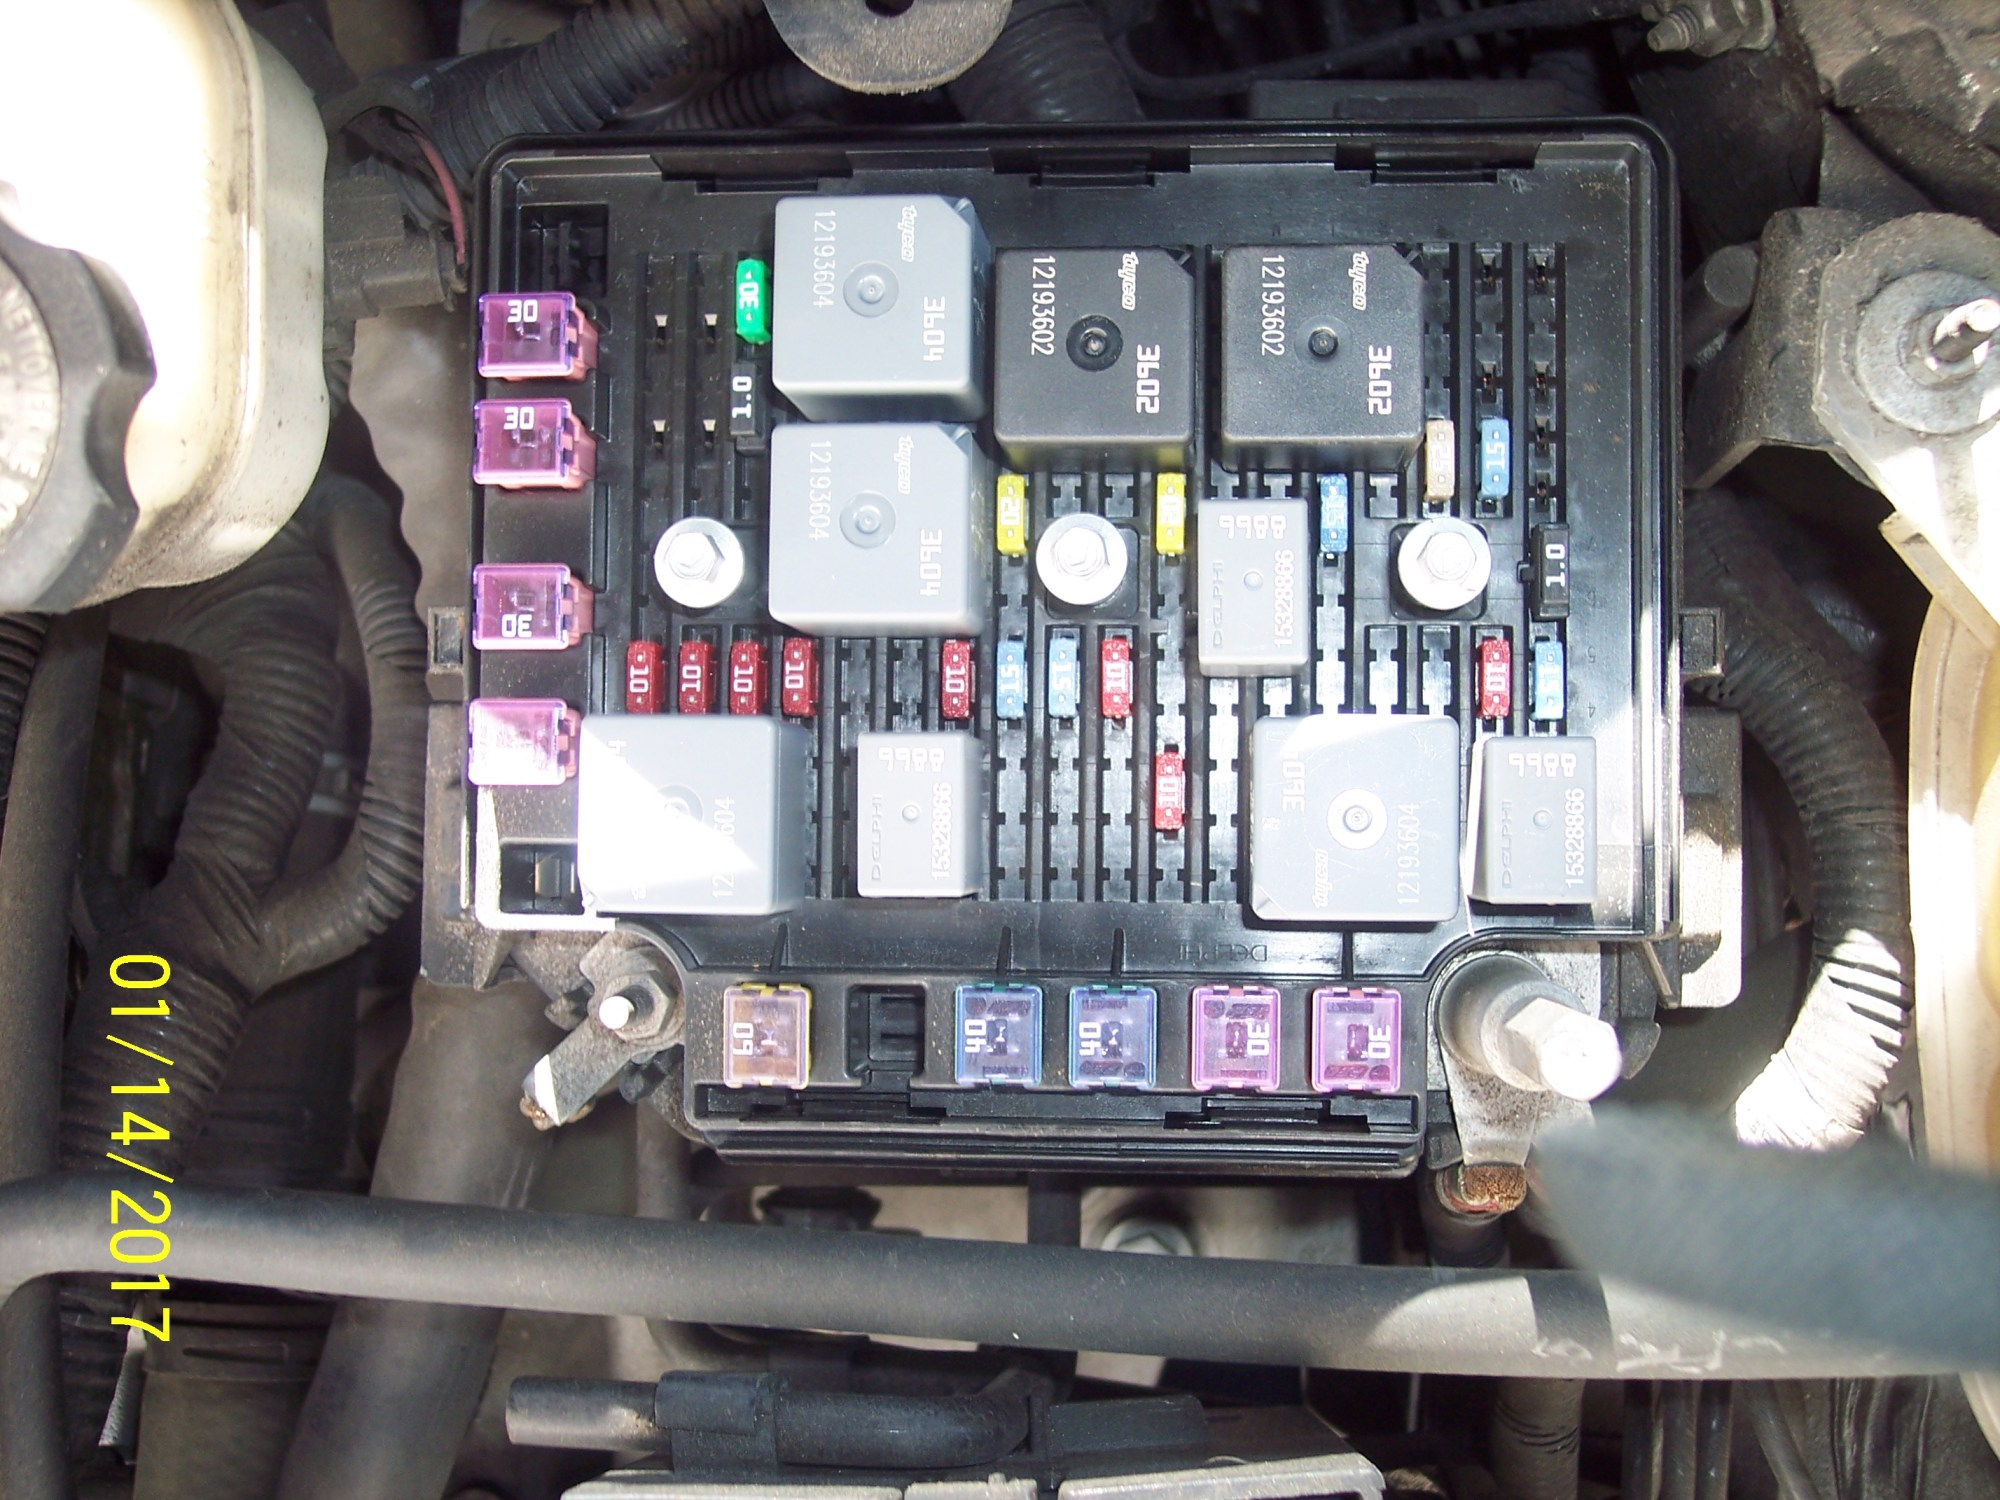 hight resolution of fuse box on saturn ion wiring diagrams for 2005 saturn ion fuse box diagram 05 saturn ion fuse box